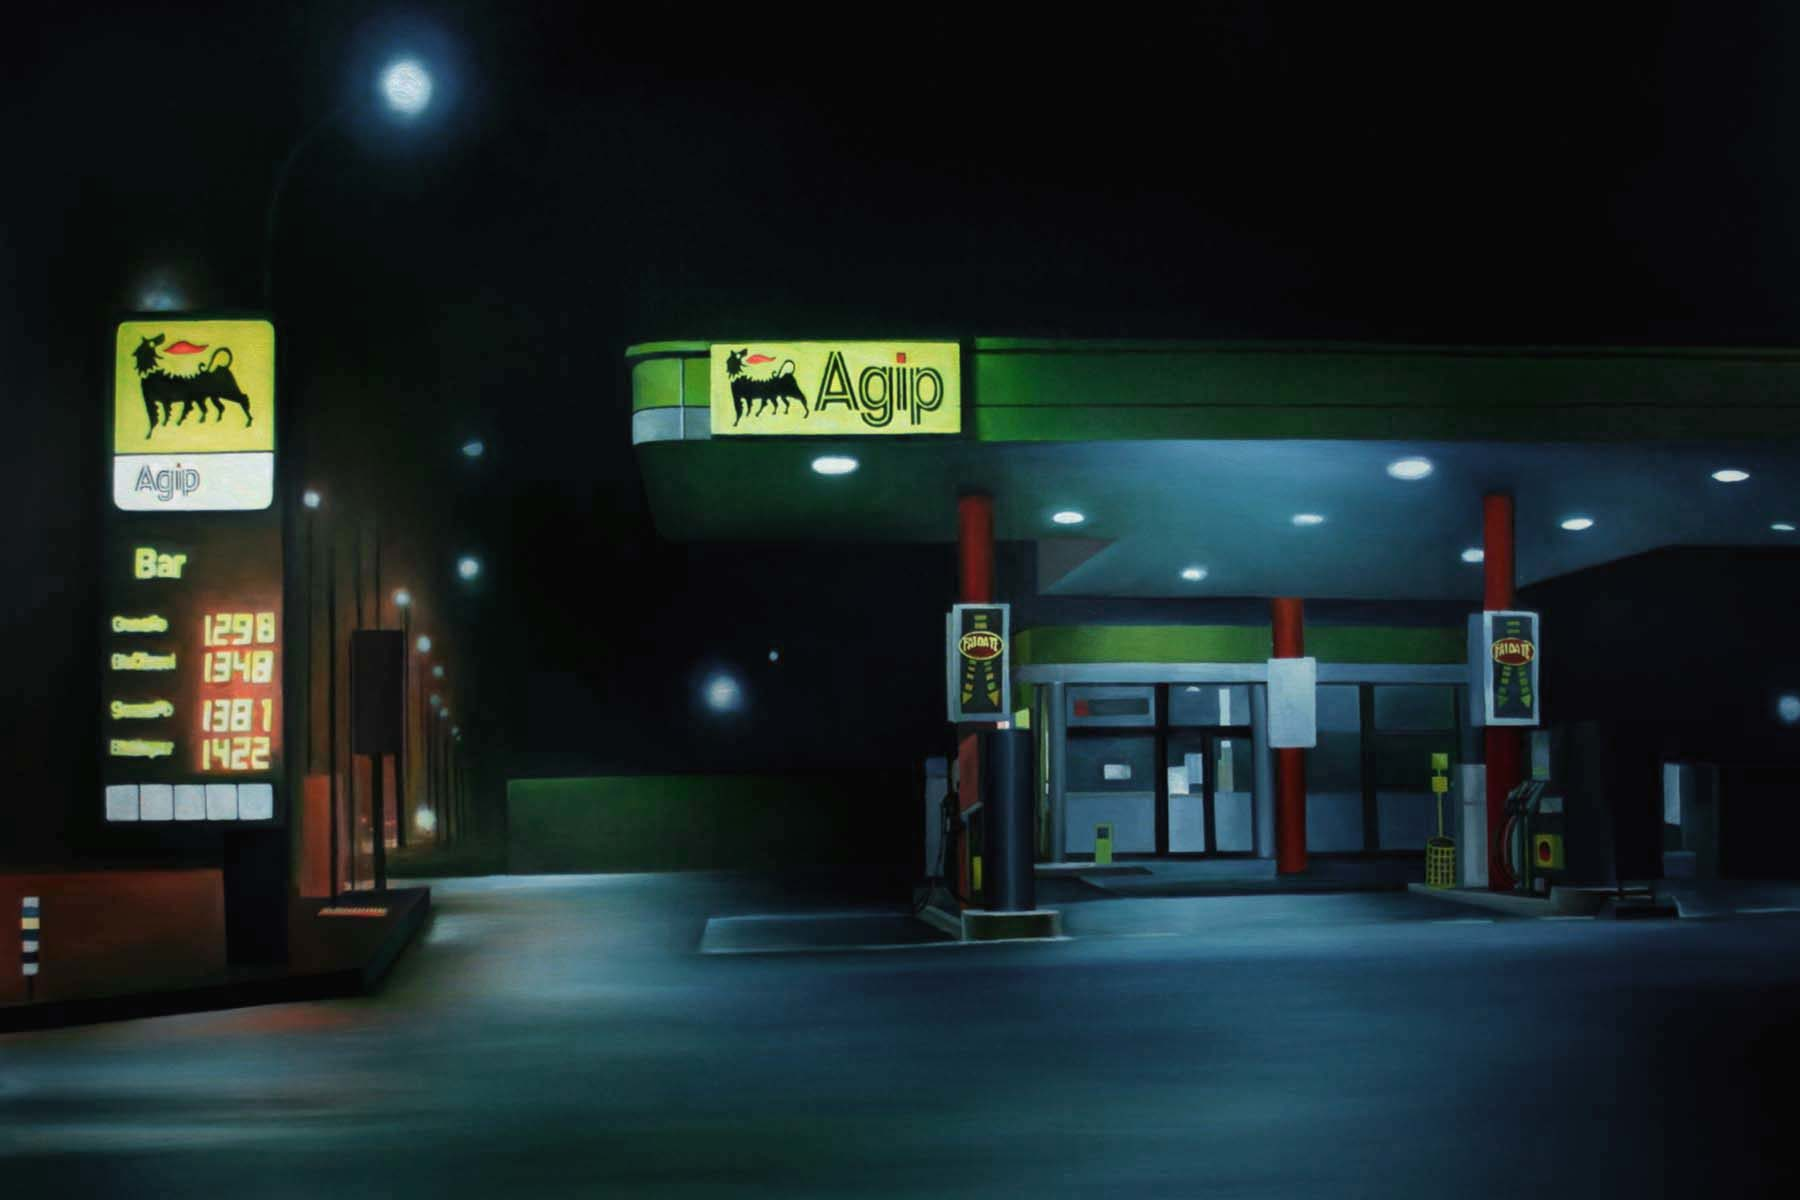 A. Bardino, Heavy fuel, 2008, oil on canvas, 100 x 120 cm